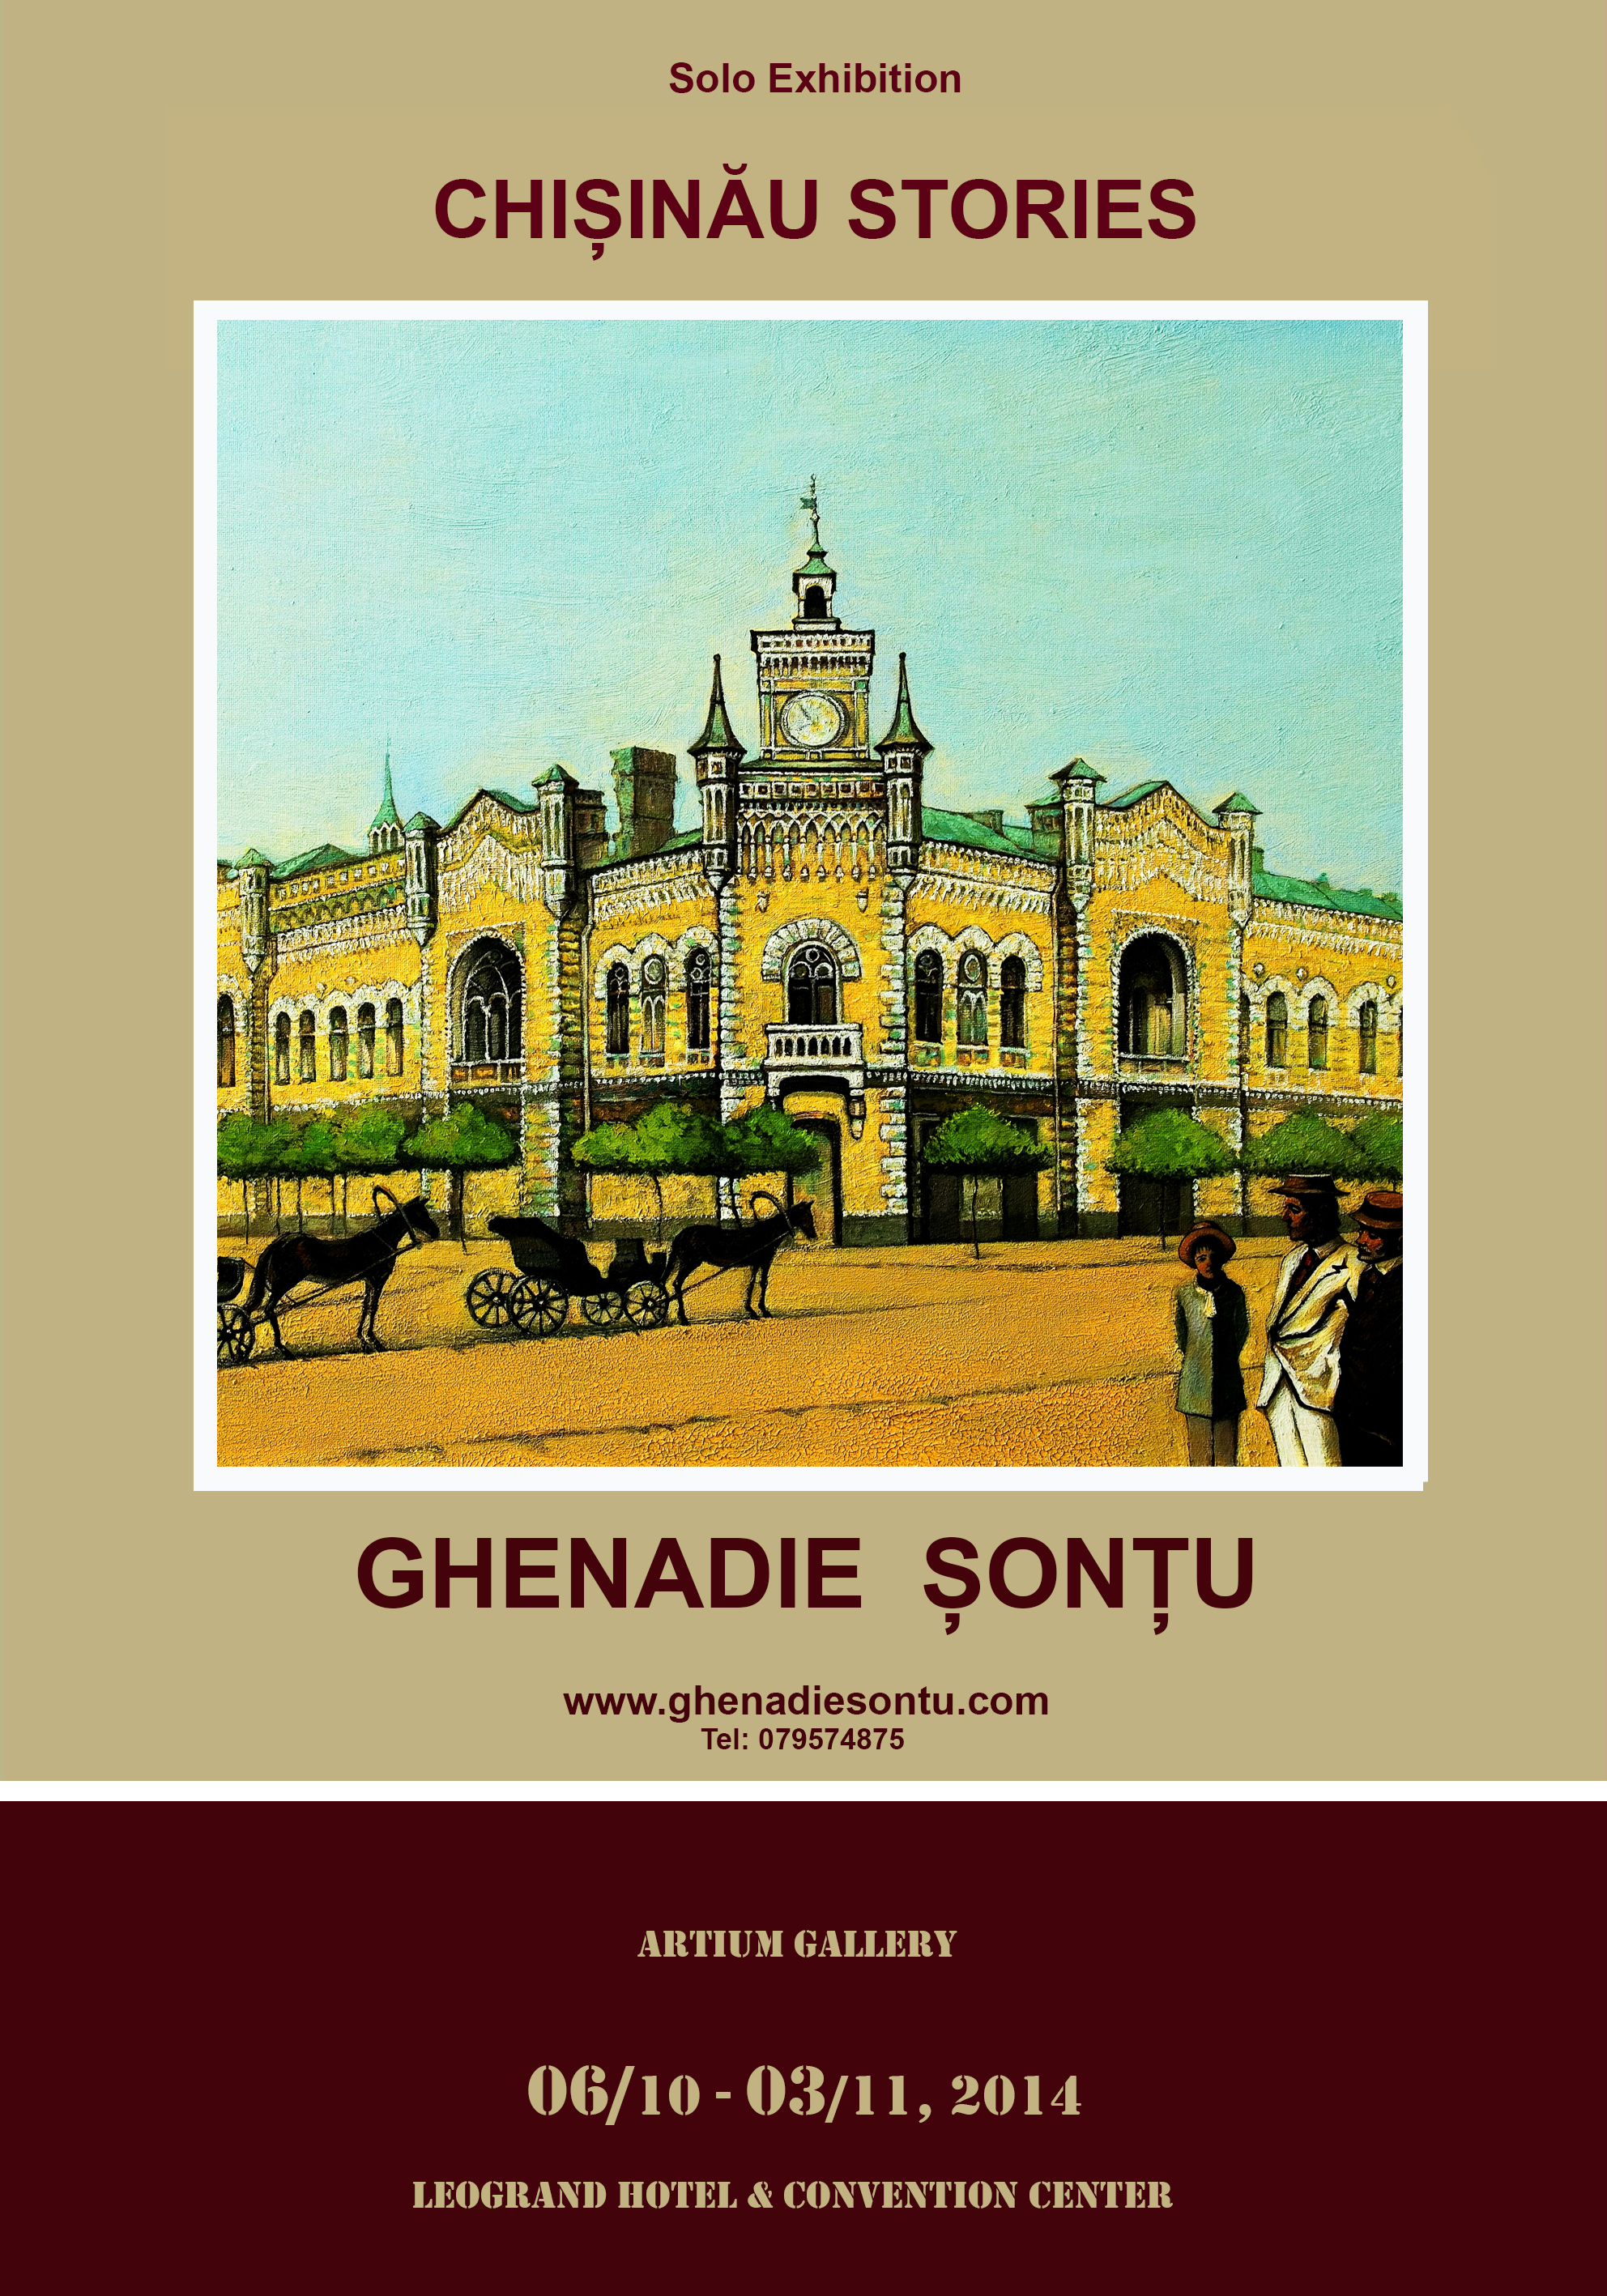 CHISINAU STORIES - Ghenadie Sontu Solo Exhibition at Artium Gallery Leogrand Convention Center Chisinau Moldova .jpg